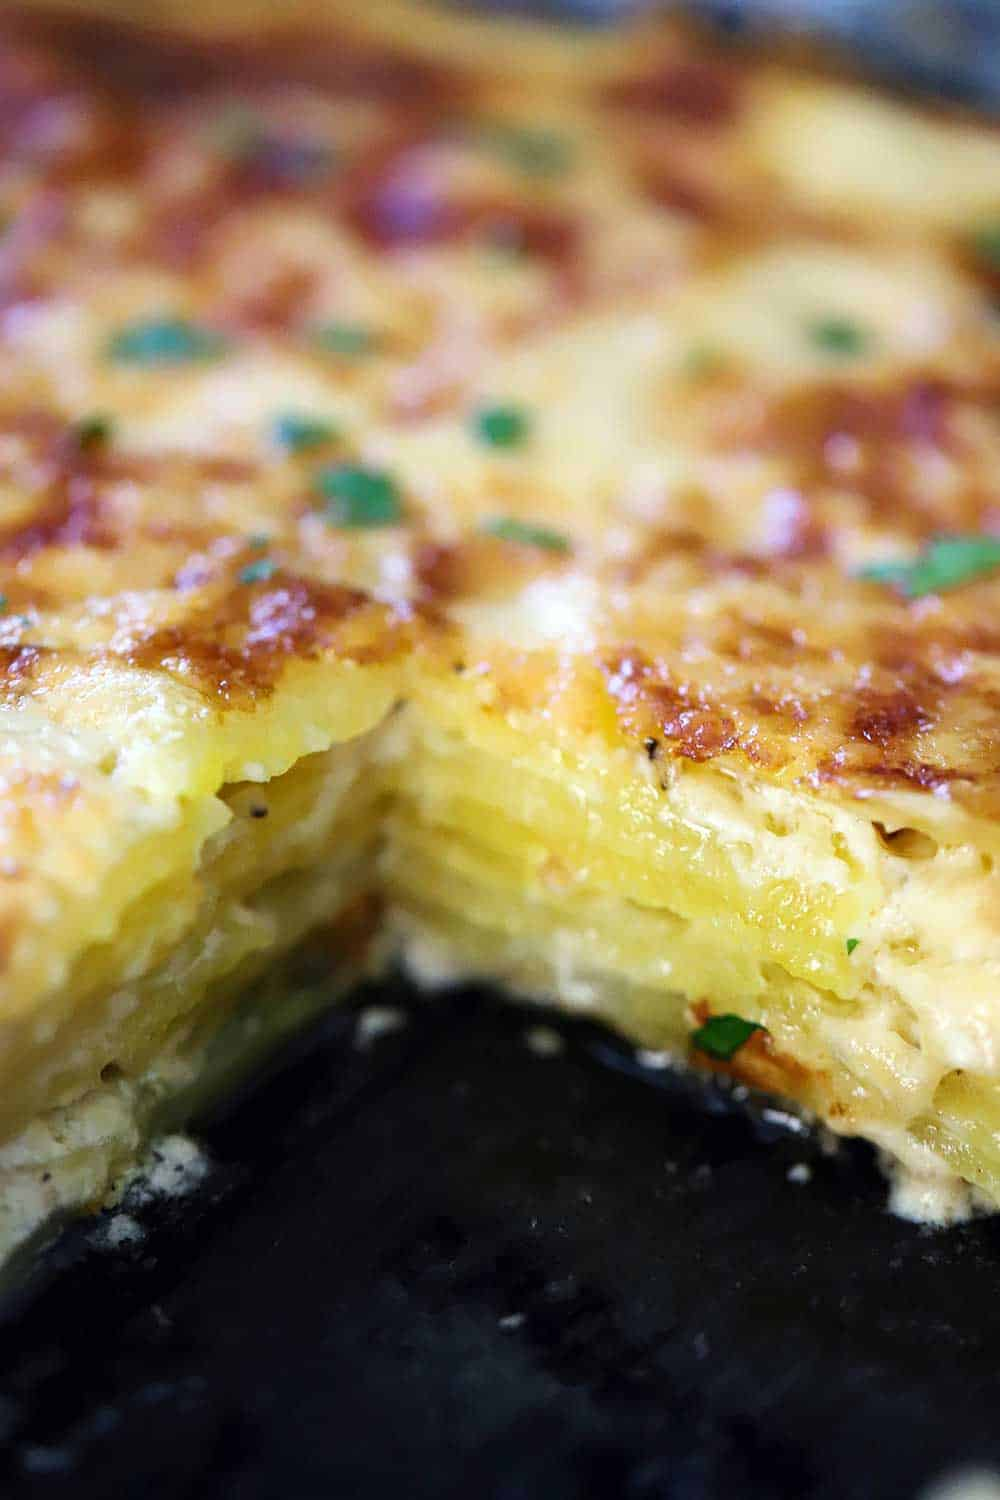 A dark baking dish filled with layers of potatoes dauphinoise with a square piece missing.